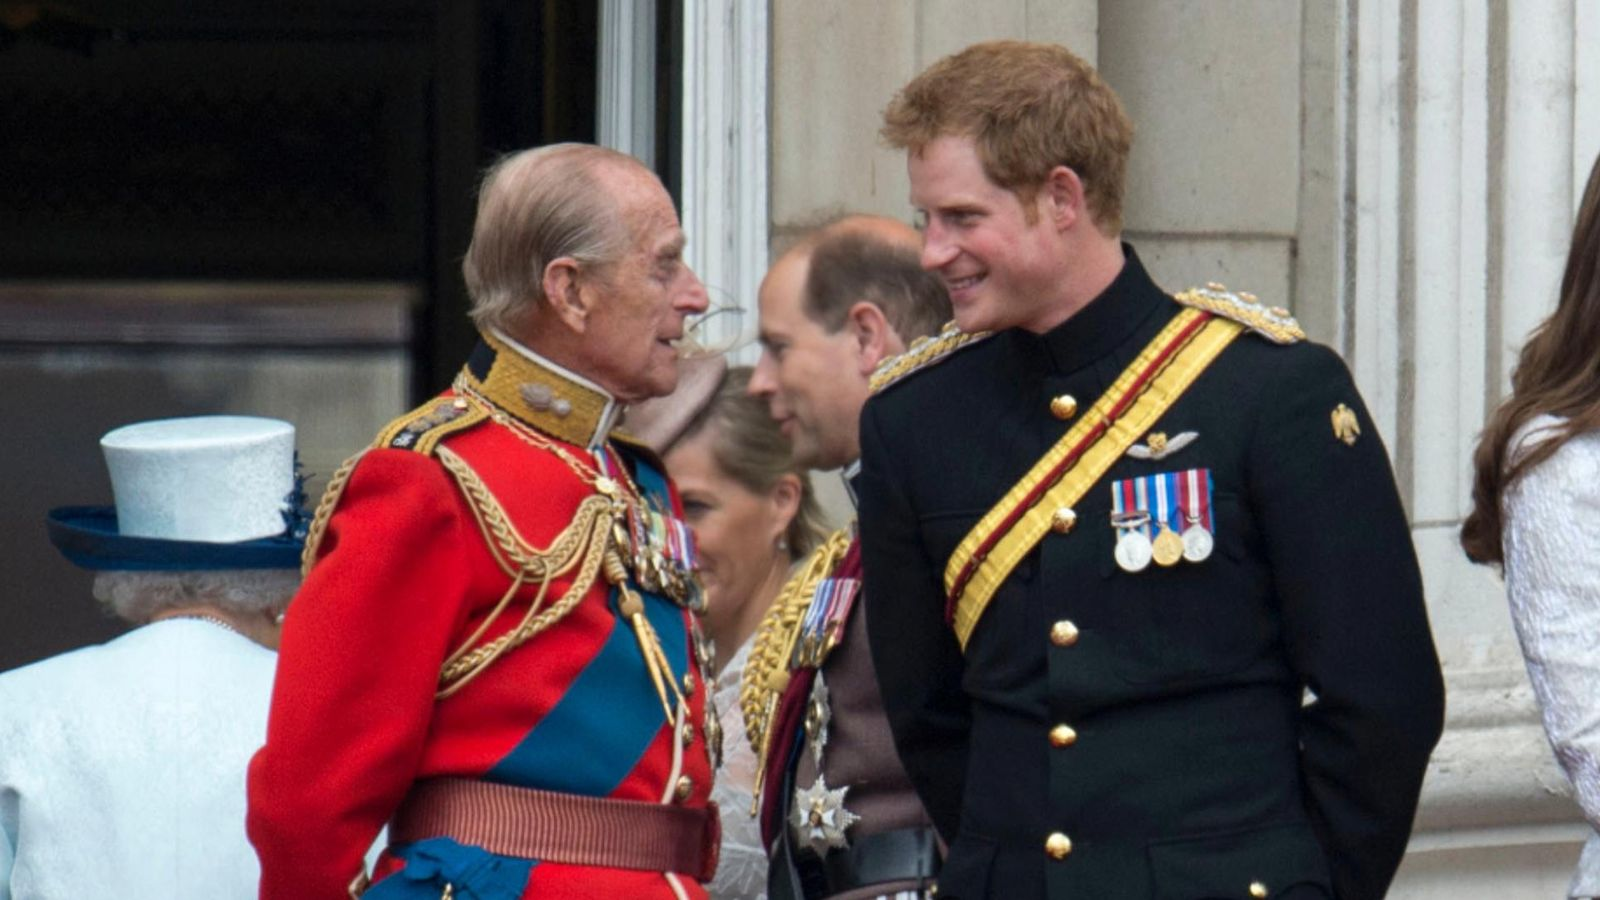 Prince Philip: Duke of Sussex says his grandfather was 'very much a listener' in memorial show